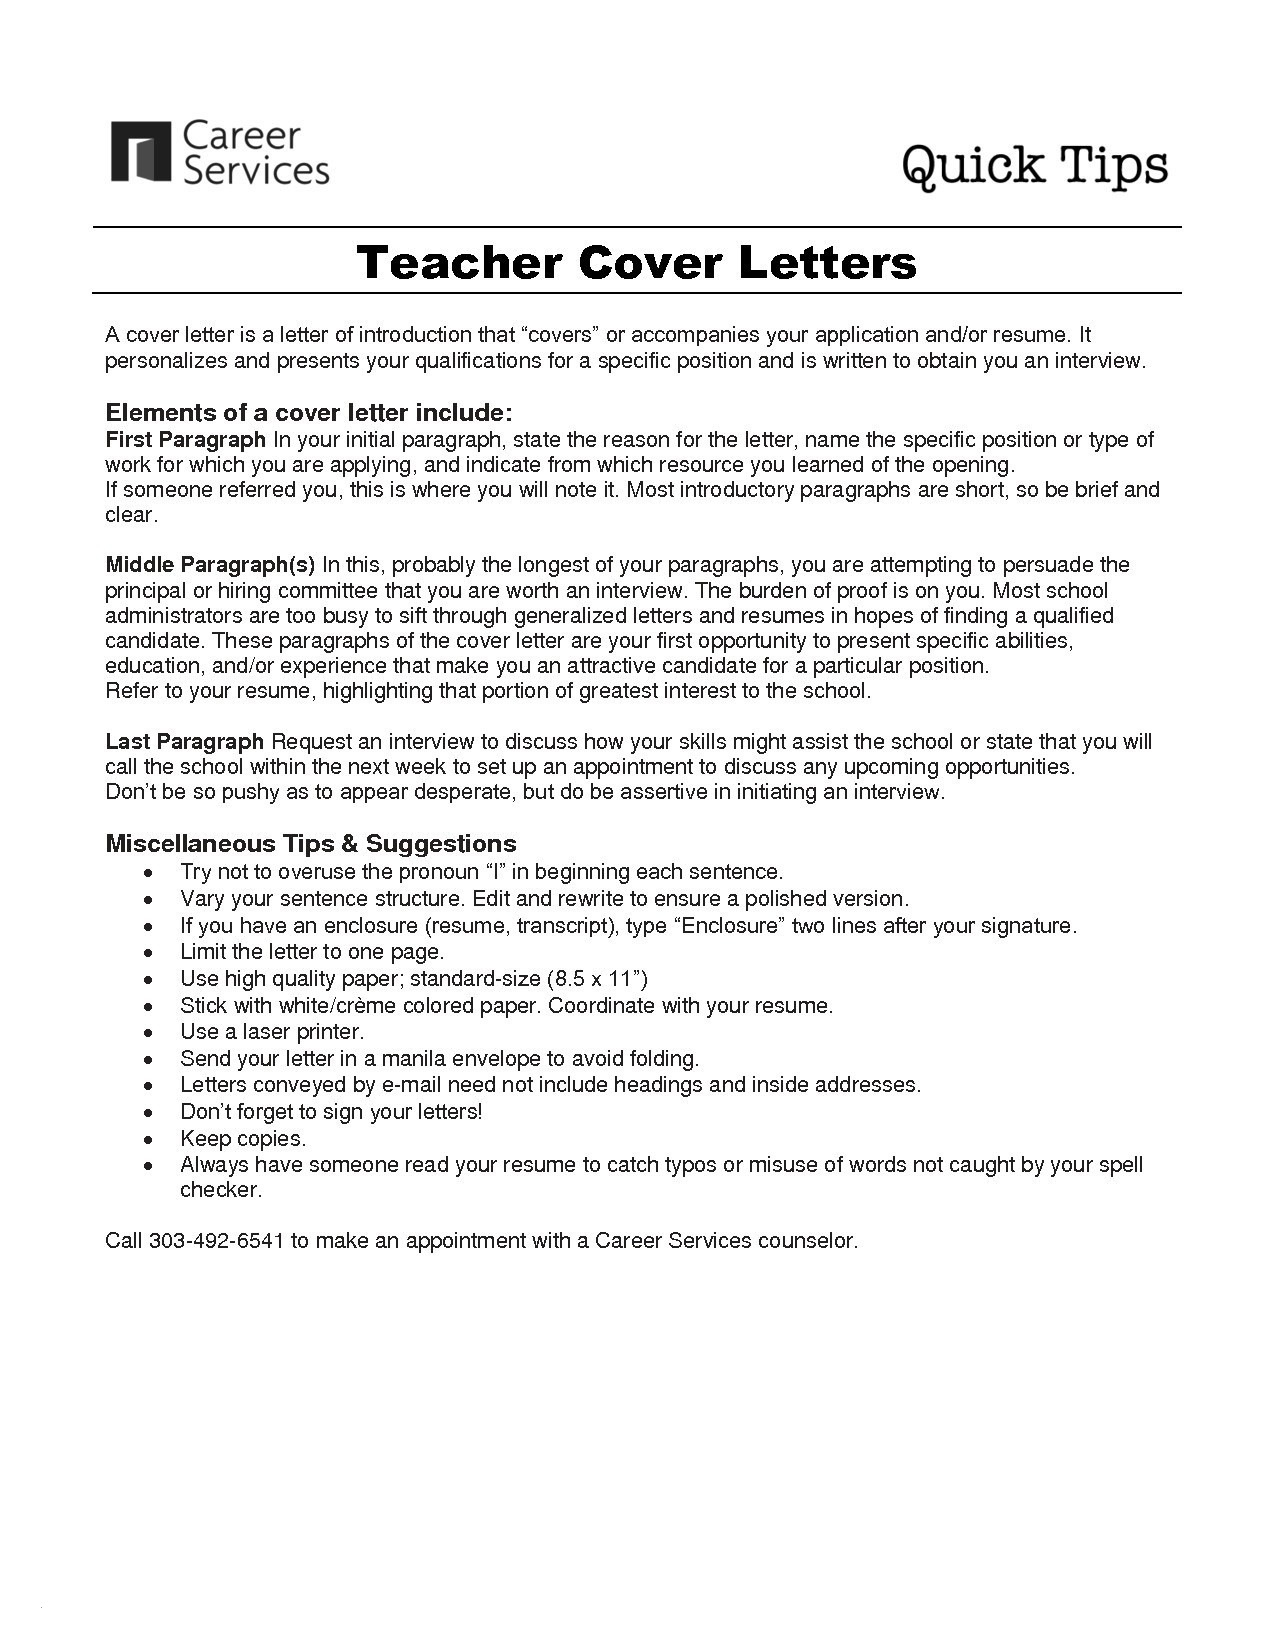 military experience on resume example Collection-Beautiful Resume Tutor Luxury Writing Your Resume Luxury Dishwasher Resume 0d How Long Should Your Resume · Resume Examples Diverse Experience 8-m